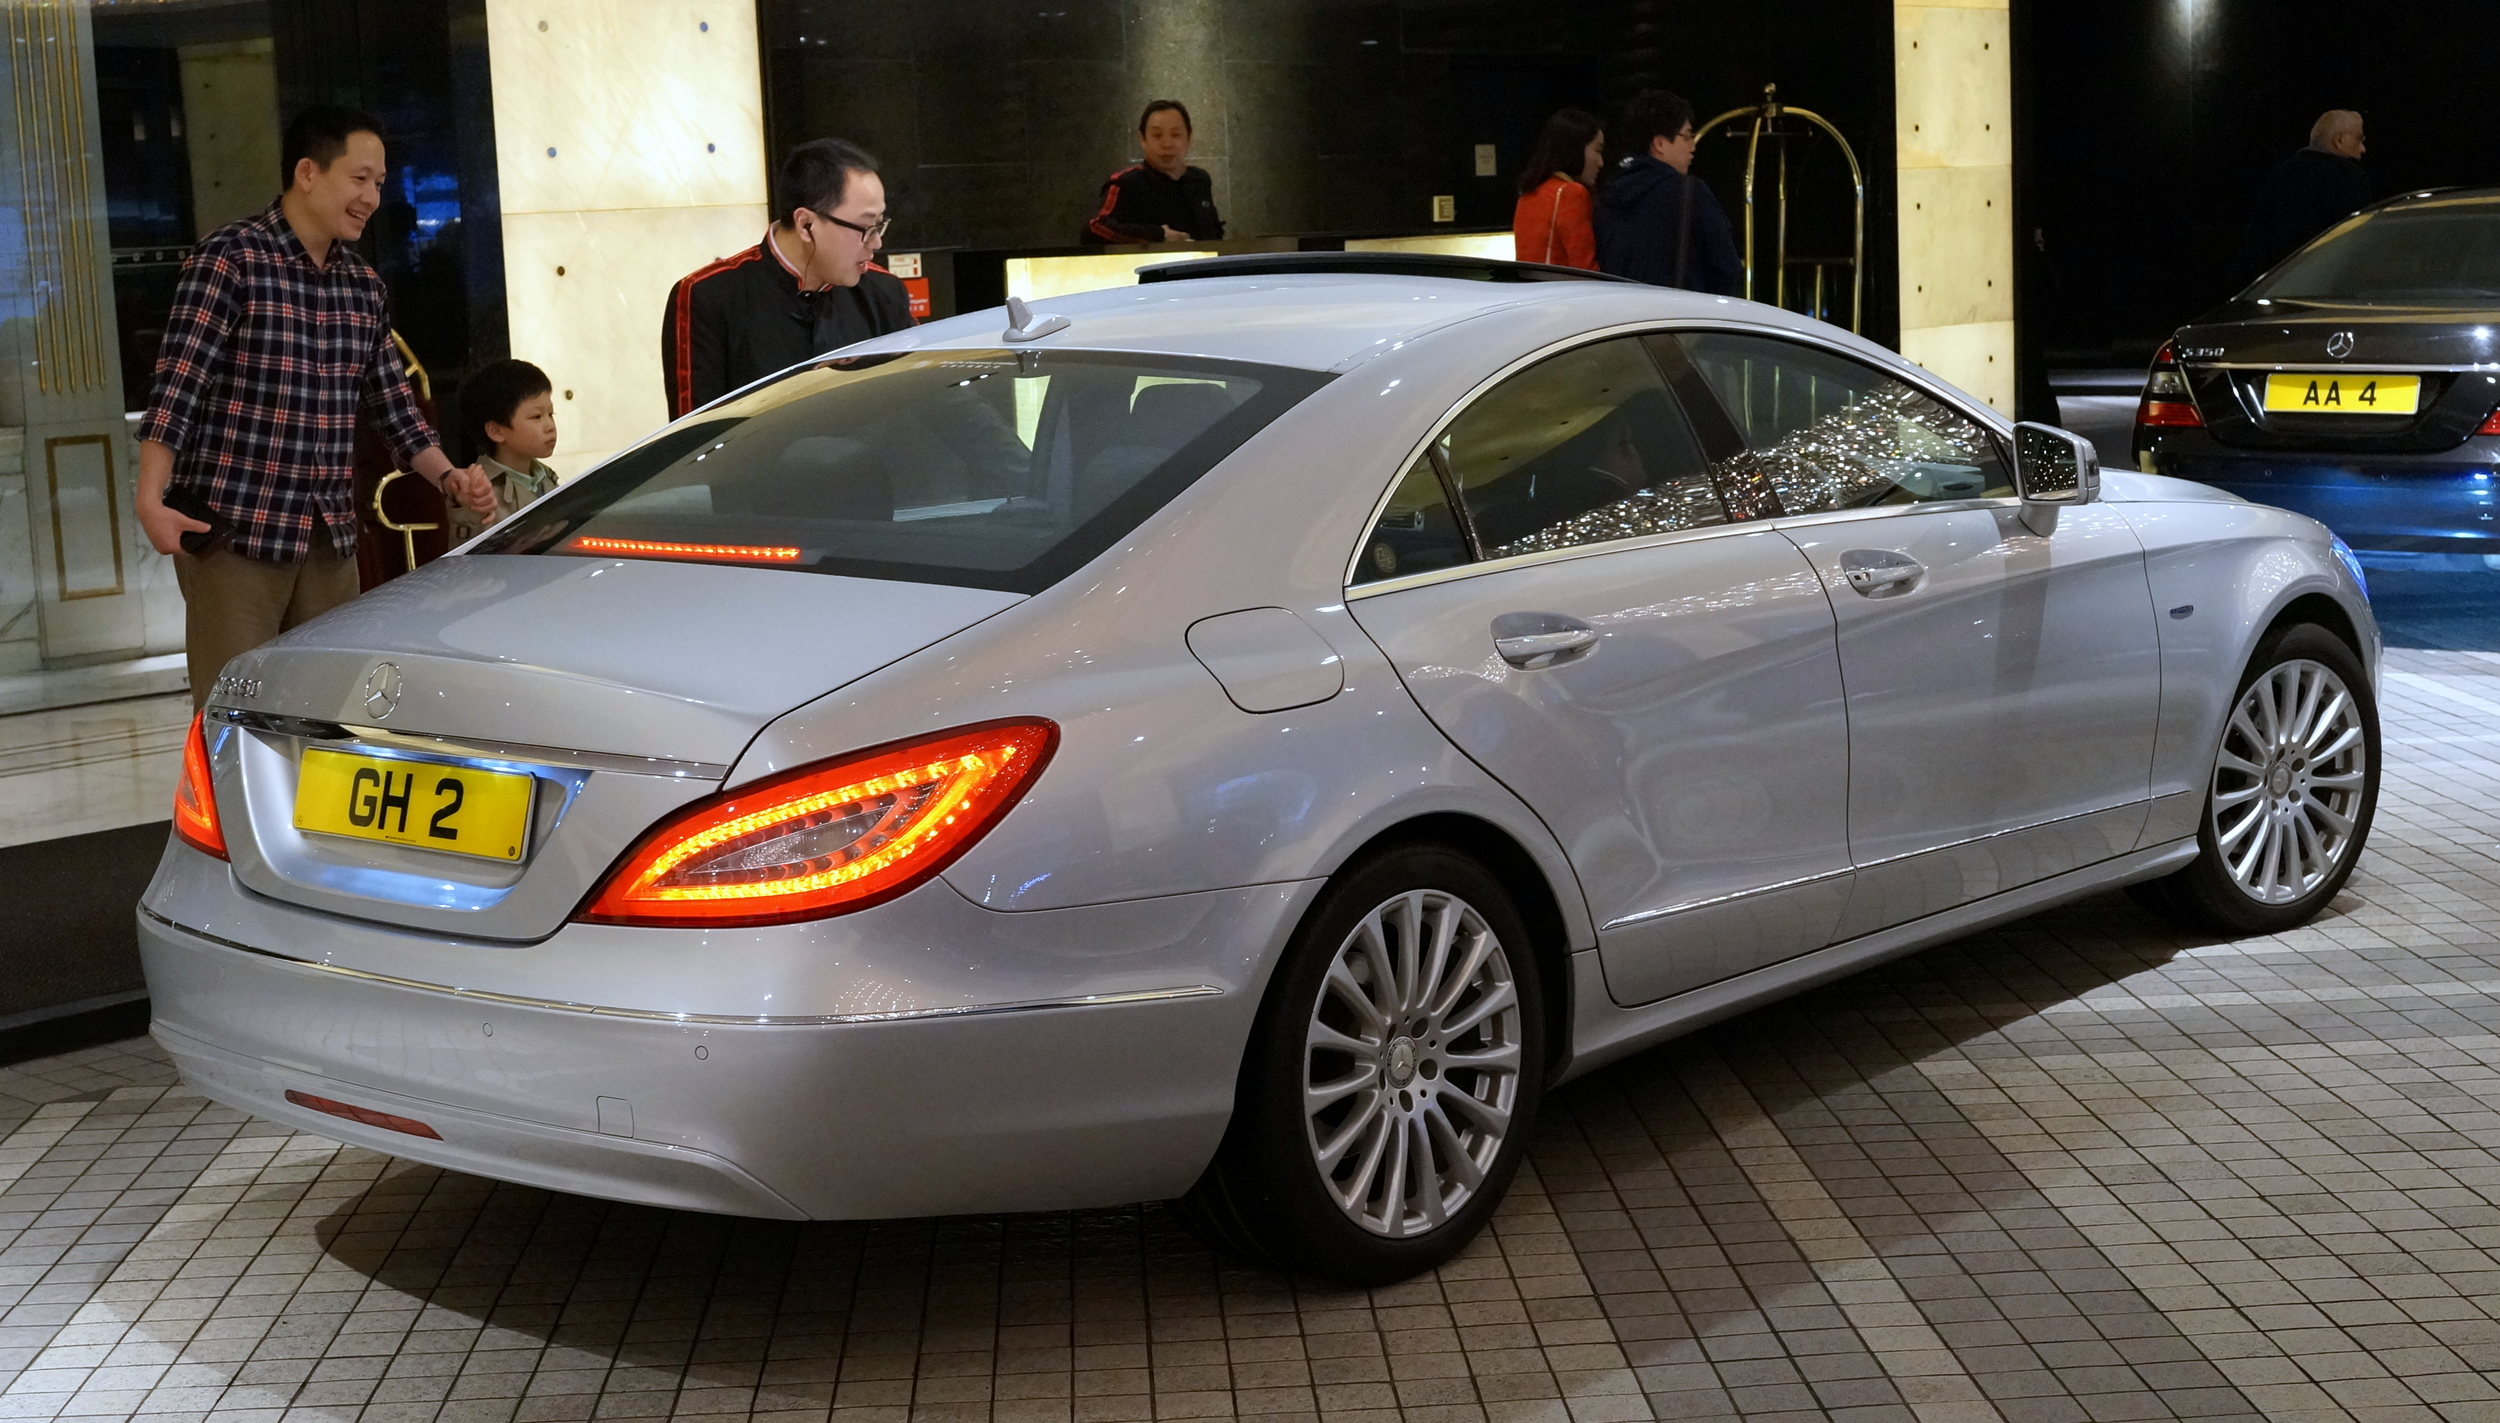 A gorgeous Mercedes Benz at the Kowloon Shangri - la Hotel - love the design of the rear lights and I would be grinning if I owned a car like this.